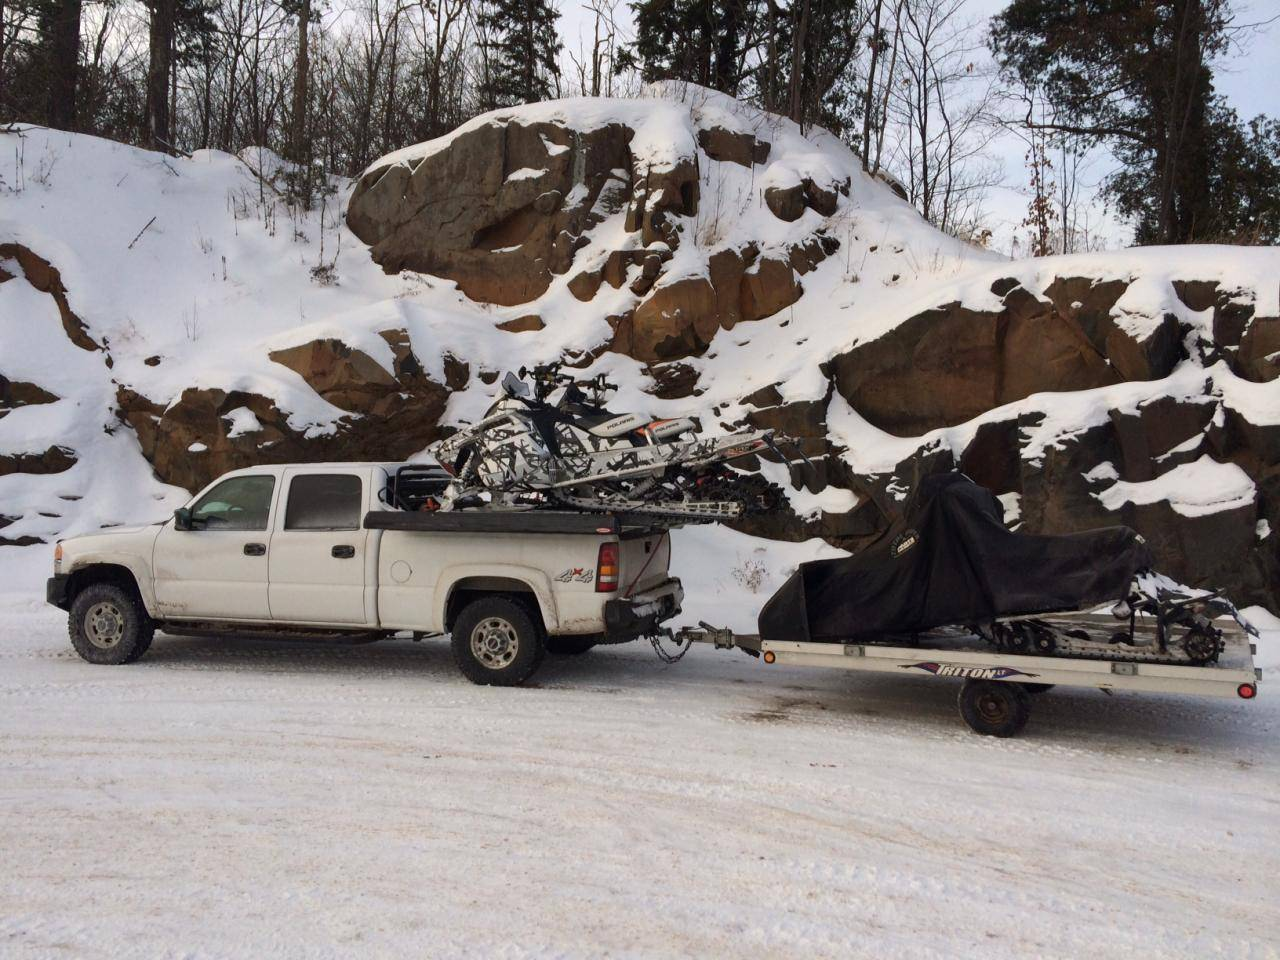 sled deck and towing enclosed trailer - snowest snowmobile forum